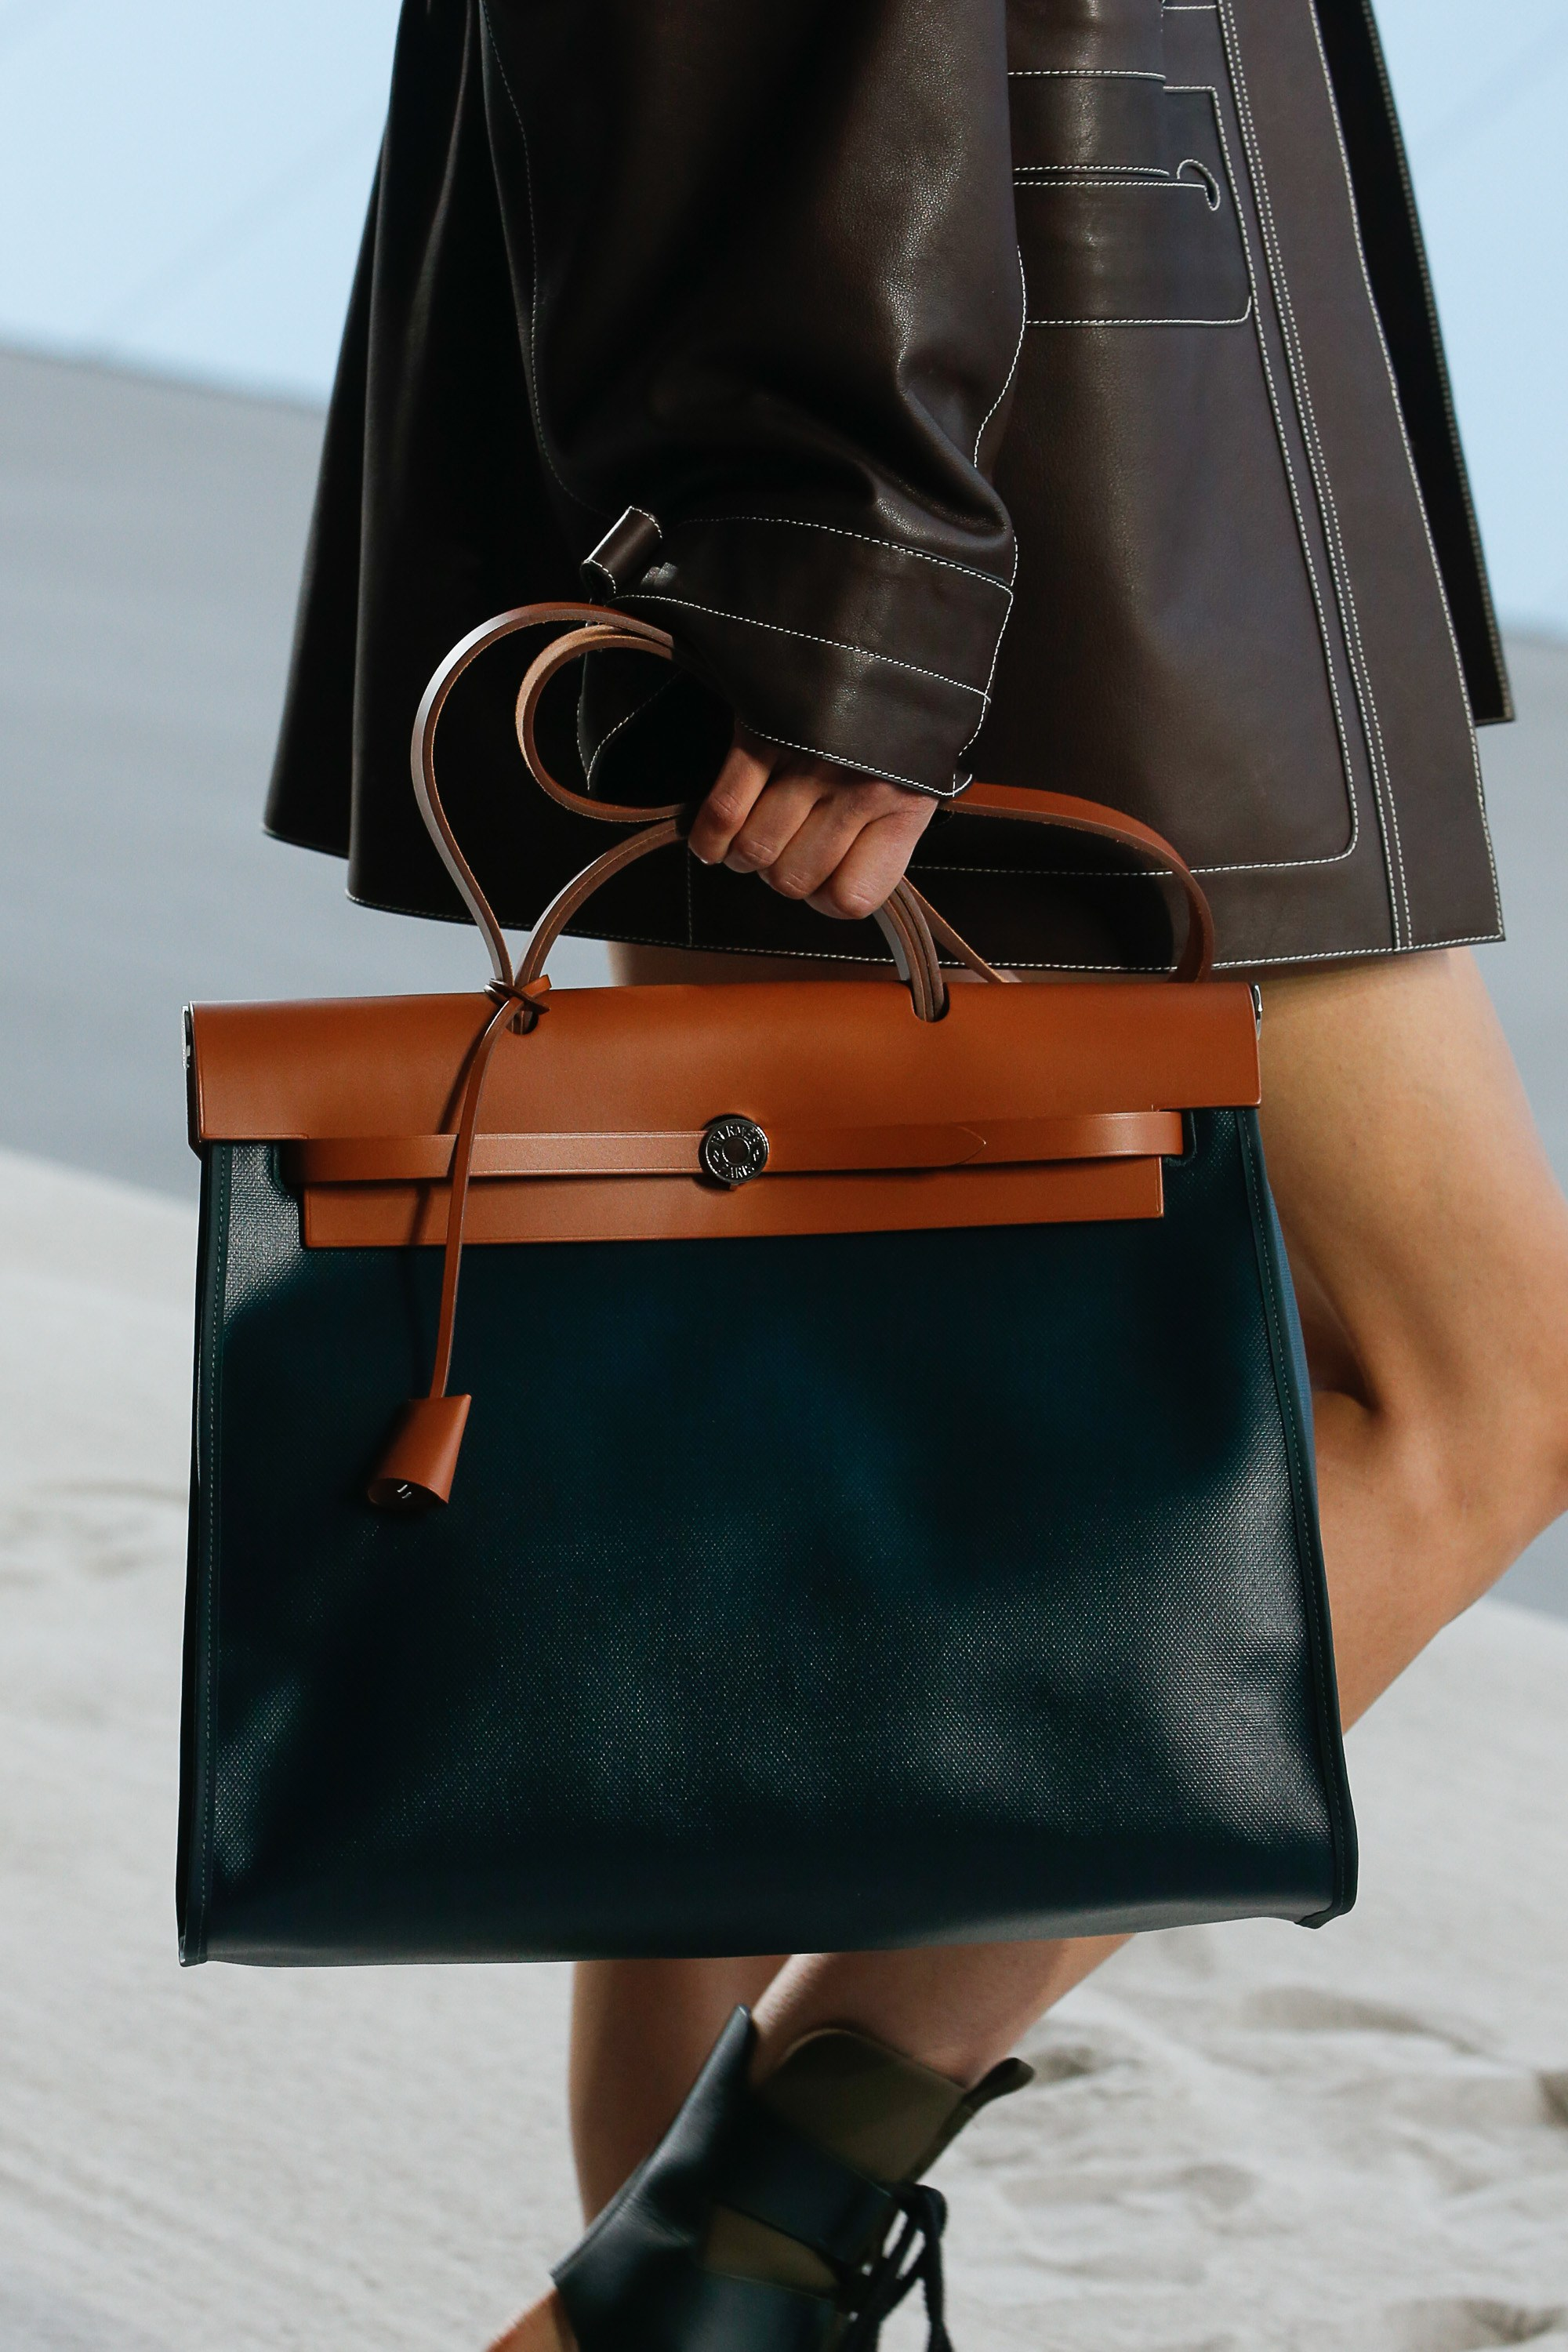 Hermes Spring Summer 2019 Runway Bag Collection Spotted